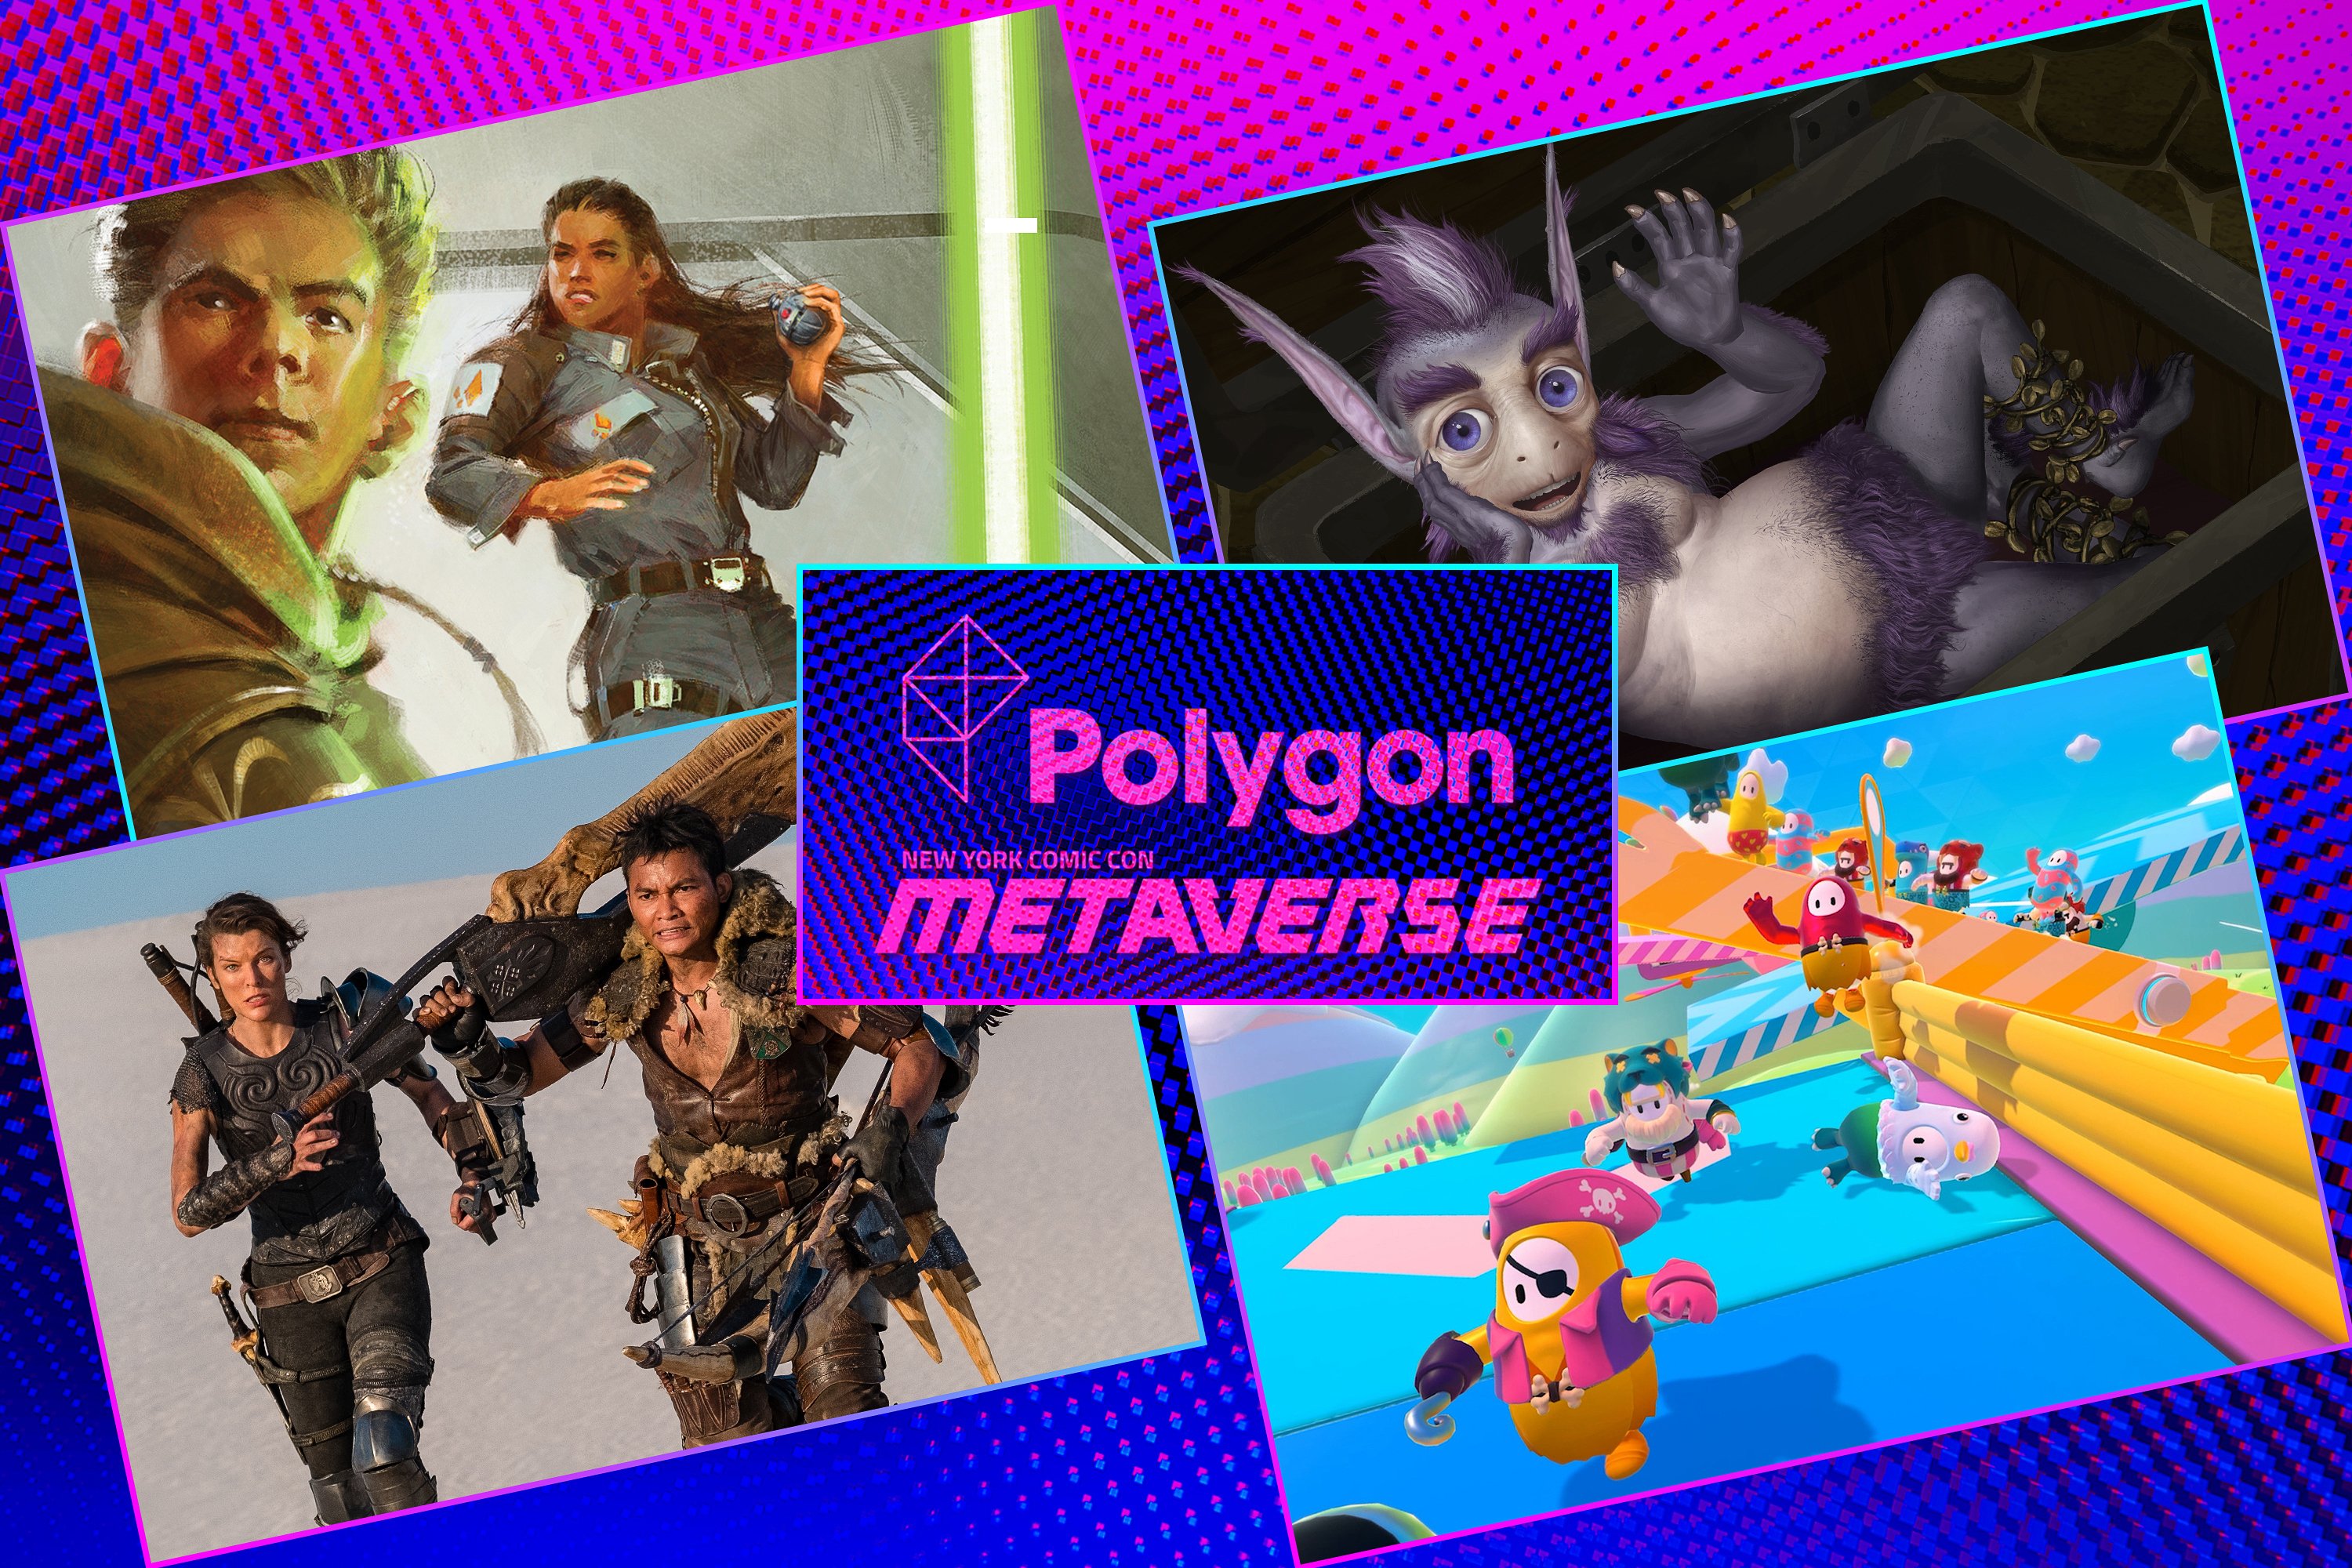 Graphic grid of four rectangles on bright purple blue background with various screen images and a Polygon/Metaverse logo